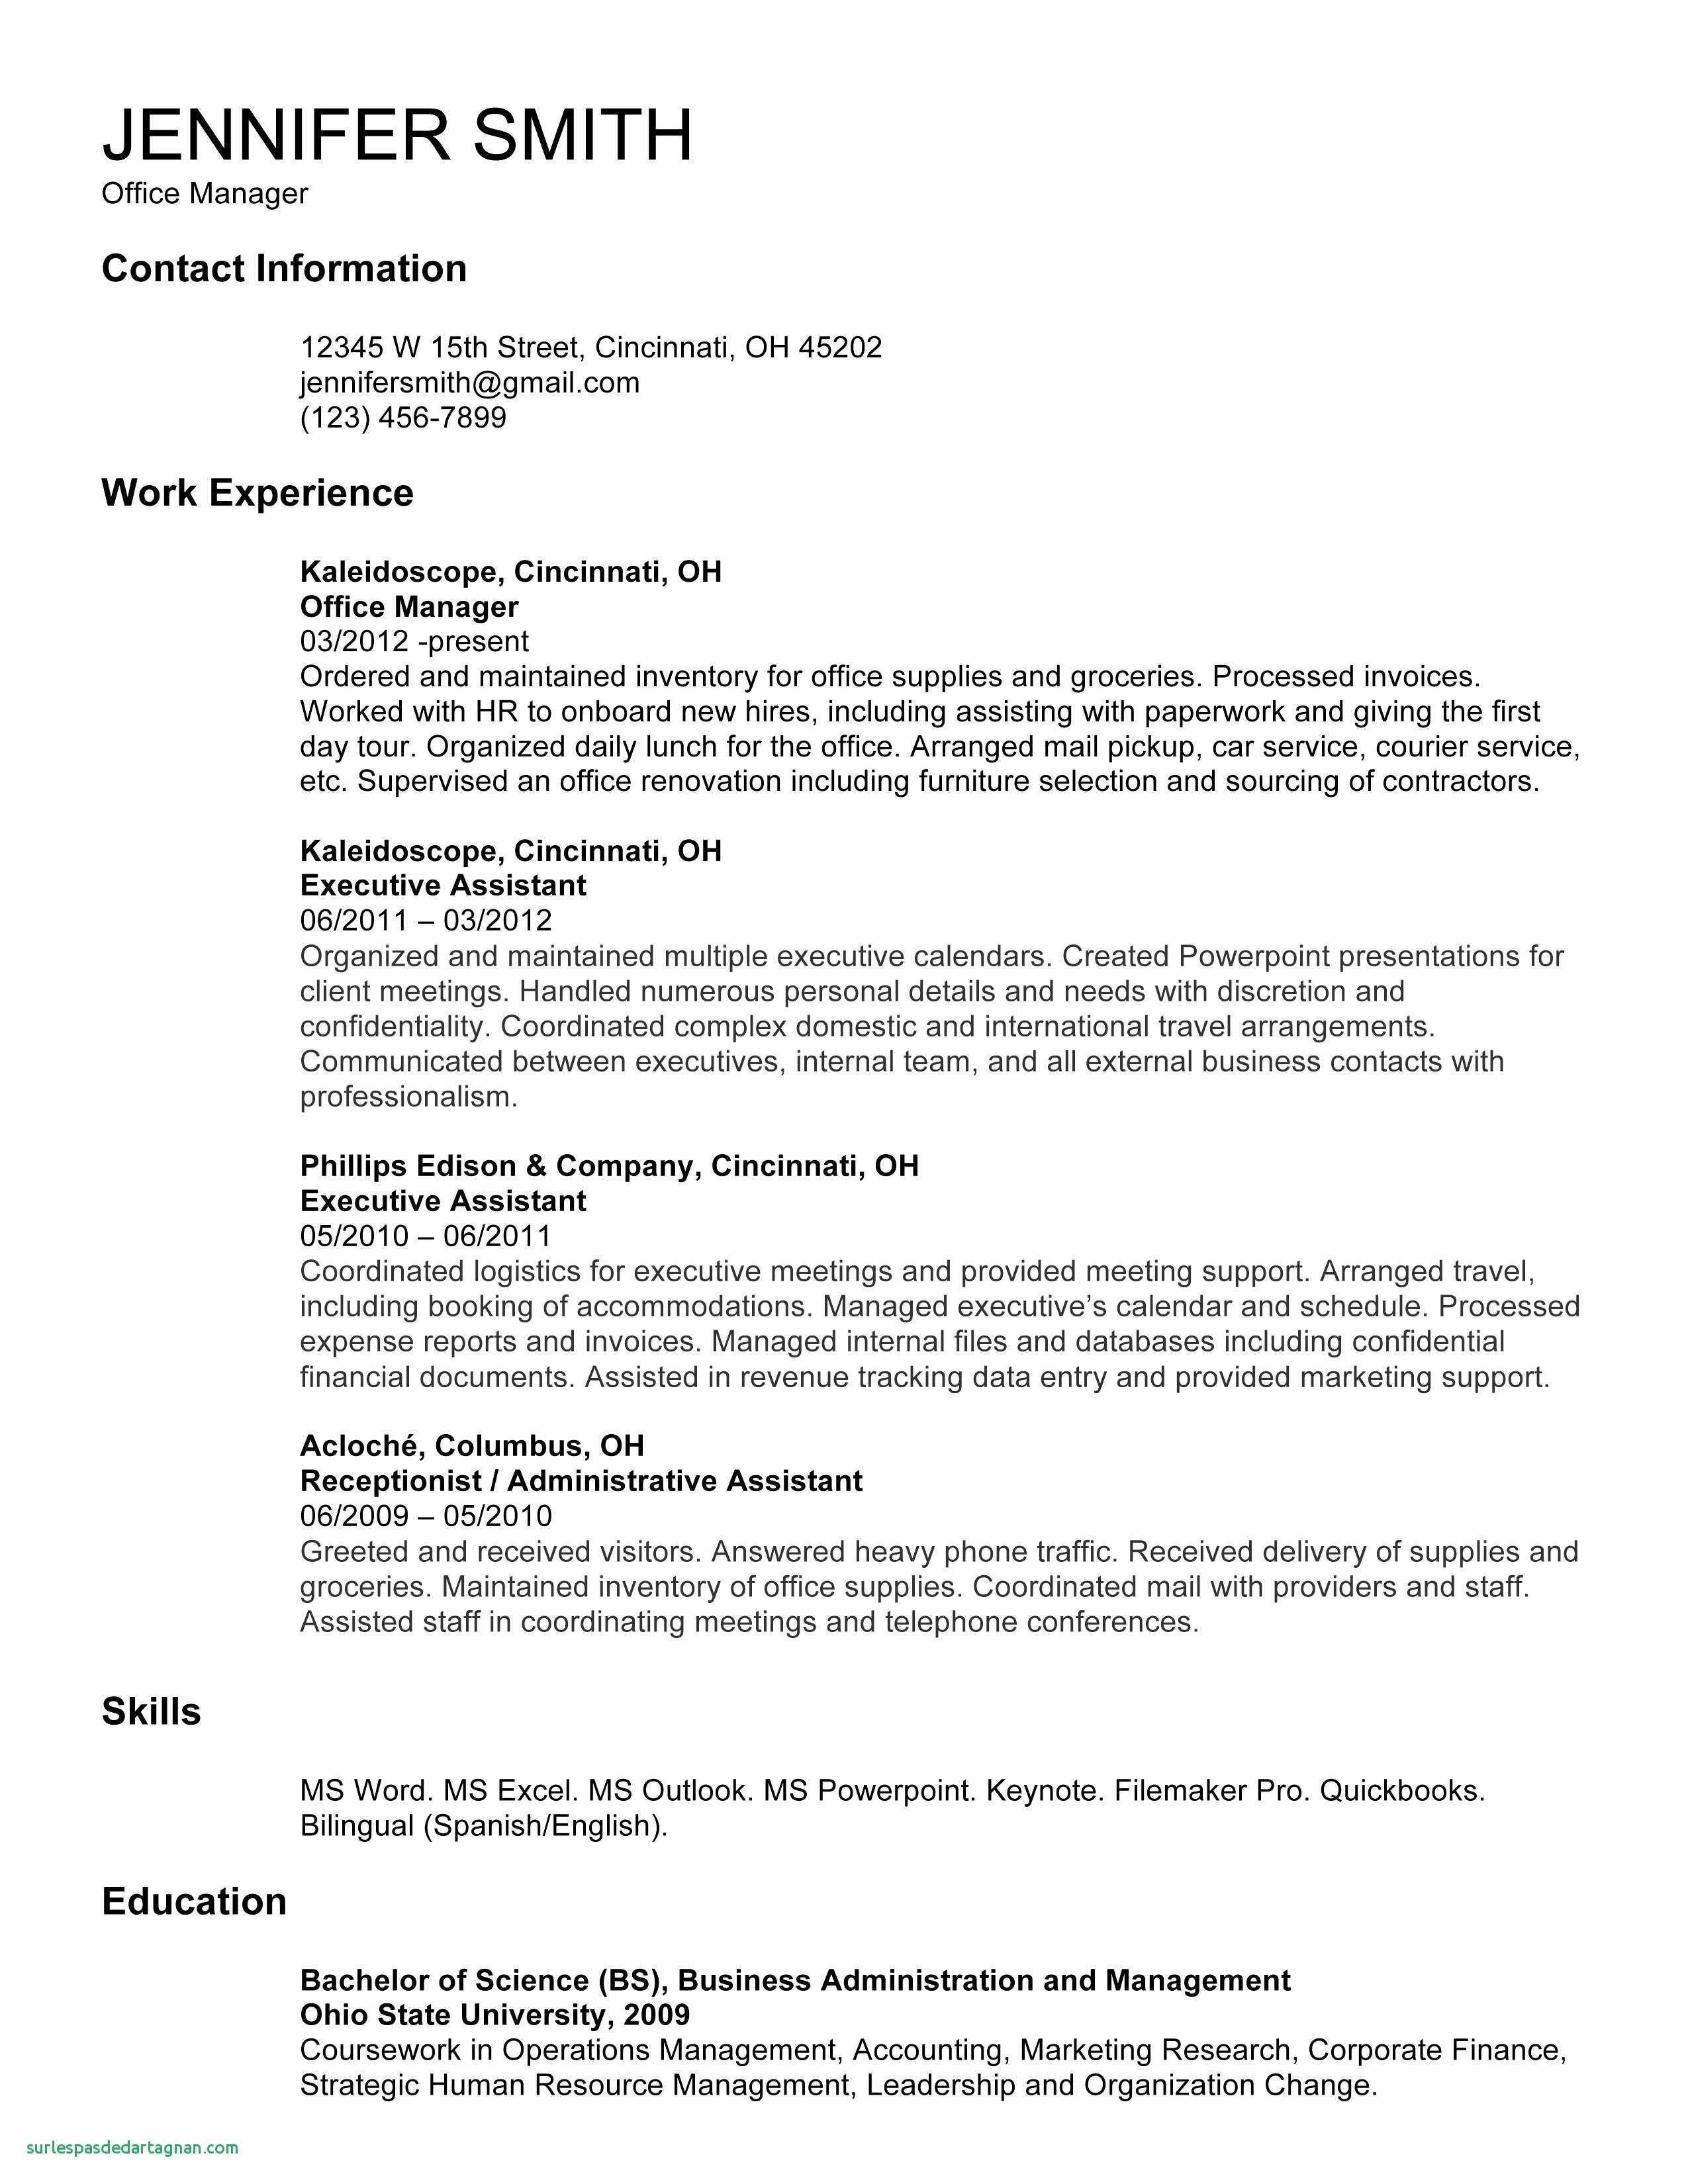 Operations Manager Resume Template - Resume Template Download Free Unique ¢Ë†Å¡ Resume Template Download